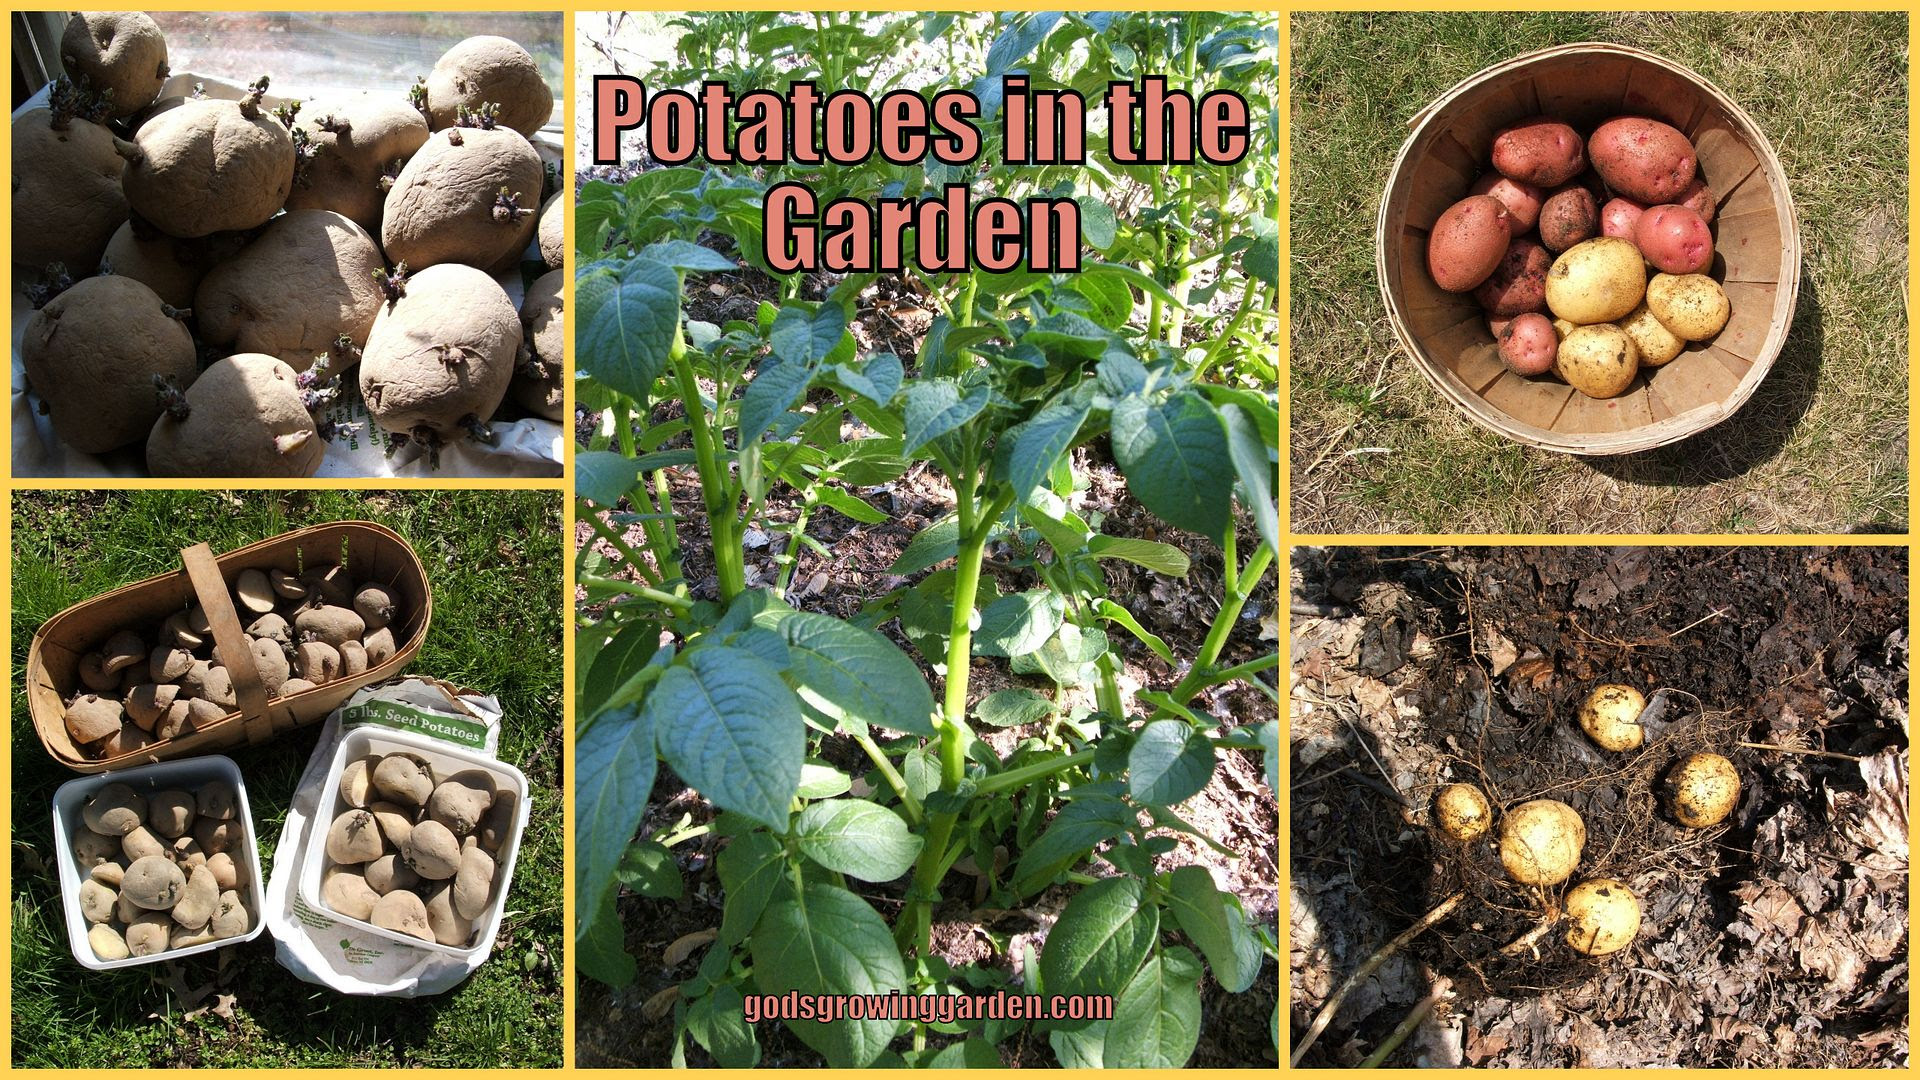 Potatoes by Angie Ouellette-Tower for godsgrowinggarden.com photo 2013-10-31_zpsaa16a33d.jpg